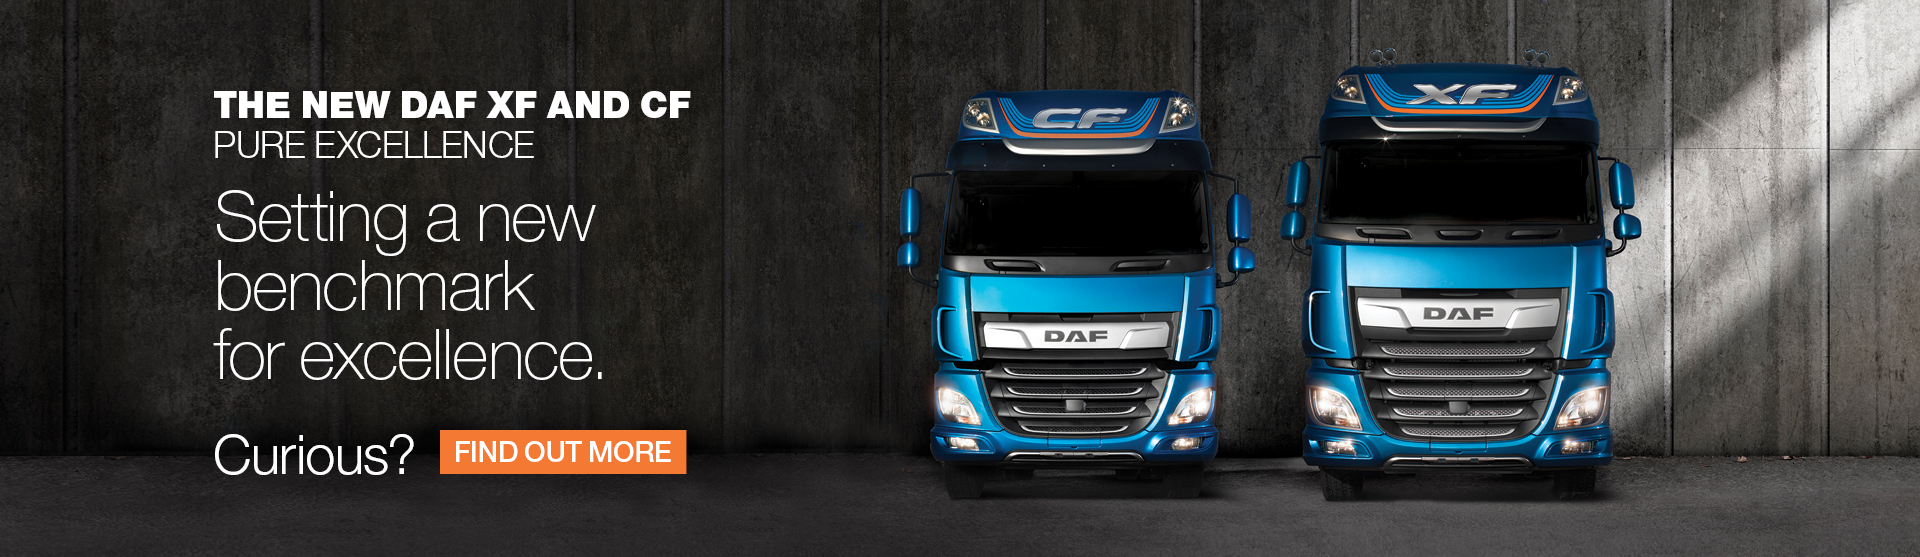 DAF_LaunchRevealBanner_1920x557px